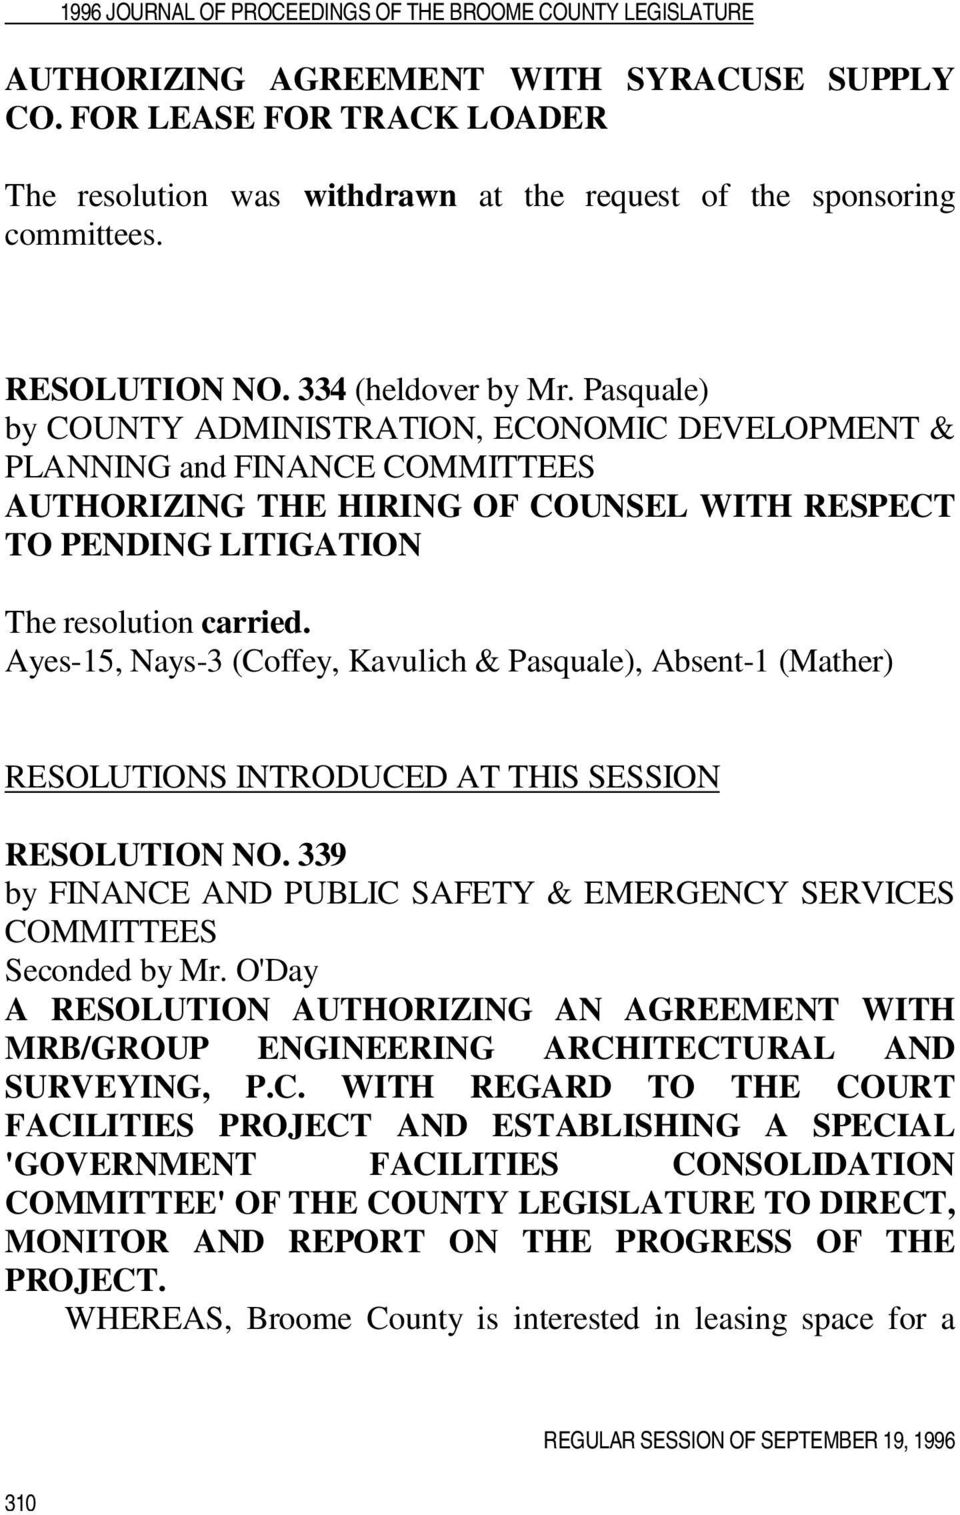 Ayes-15, Nays-3 (Coffey, Kavulich & Pasquale), Absent-1 (Mather) RESOLUTIONS INTRODUCED AT THIS SESSION RESOLUTION NO. 339 by FINANCE AND PUBLIC SAFETY & EMERGENCY SERVICES COMMITTEES Seconded by Mr.